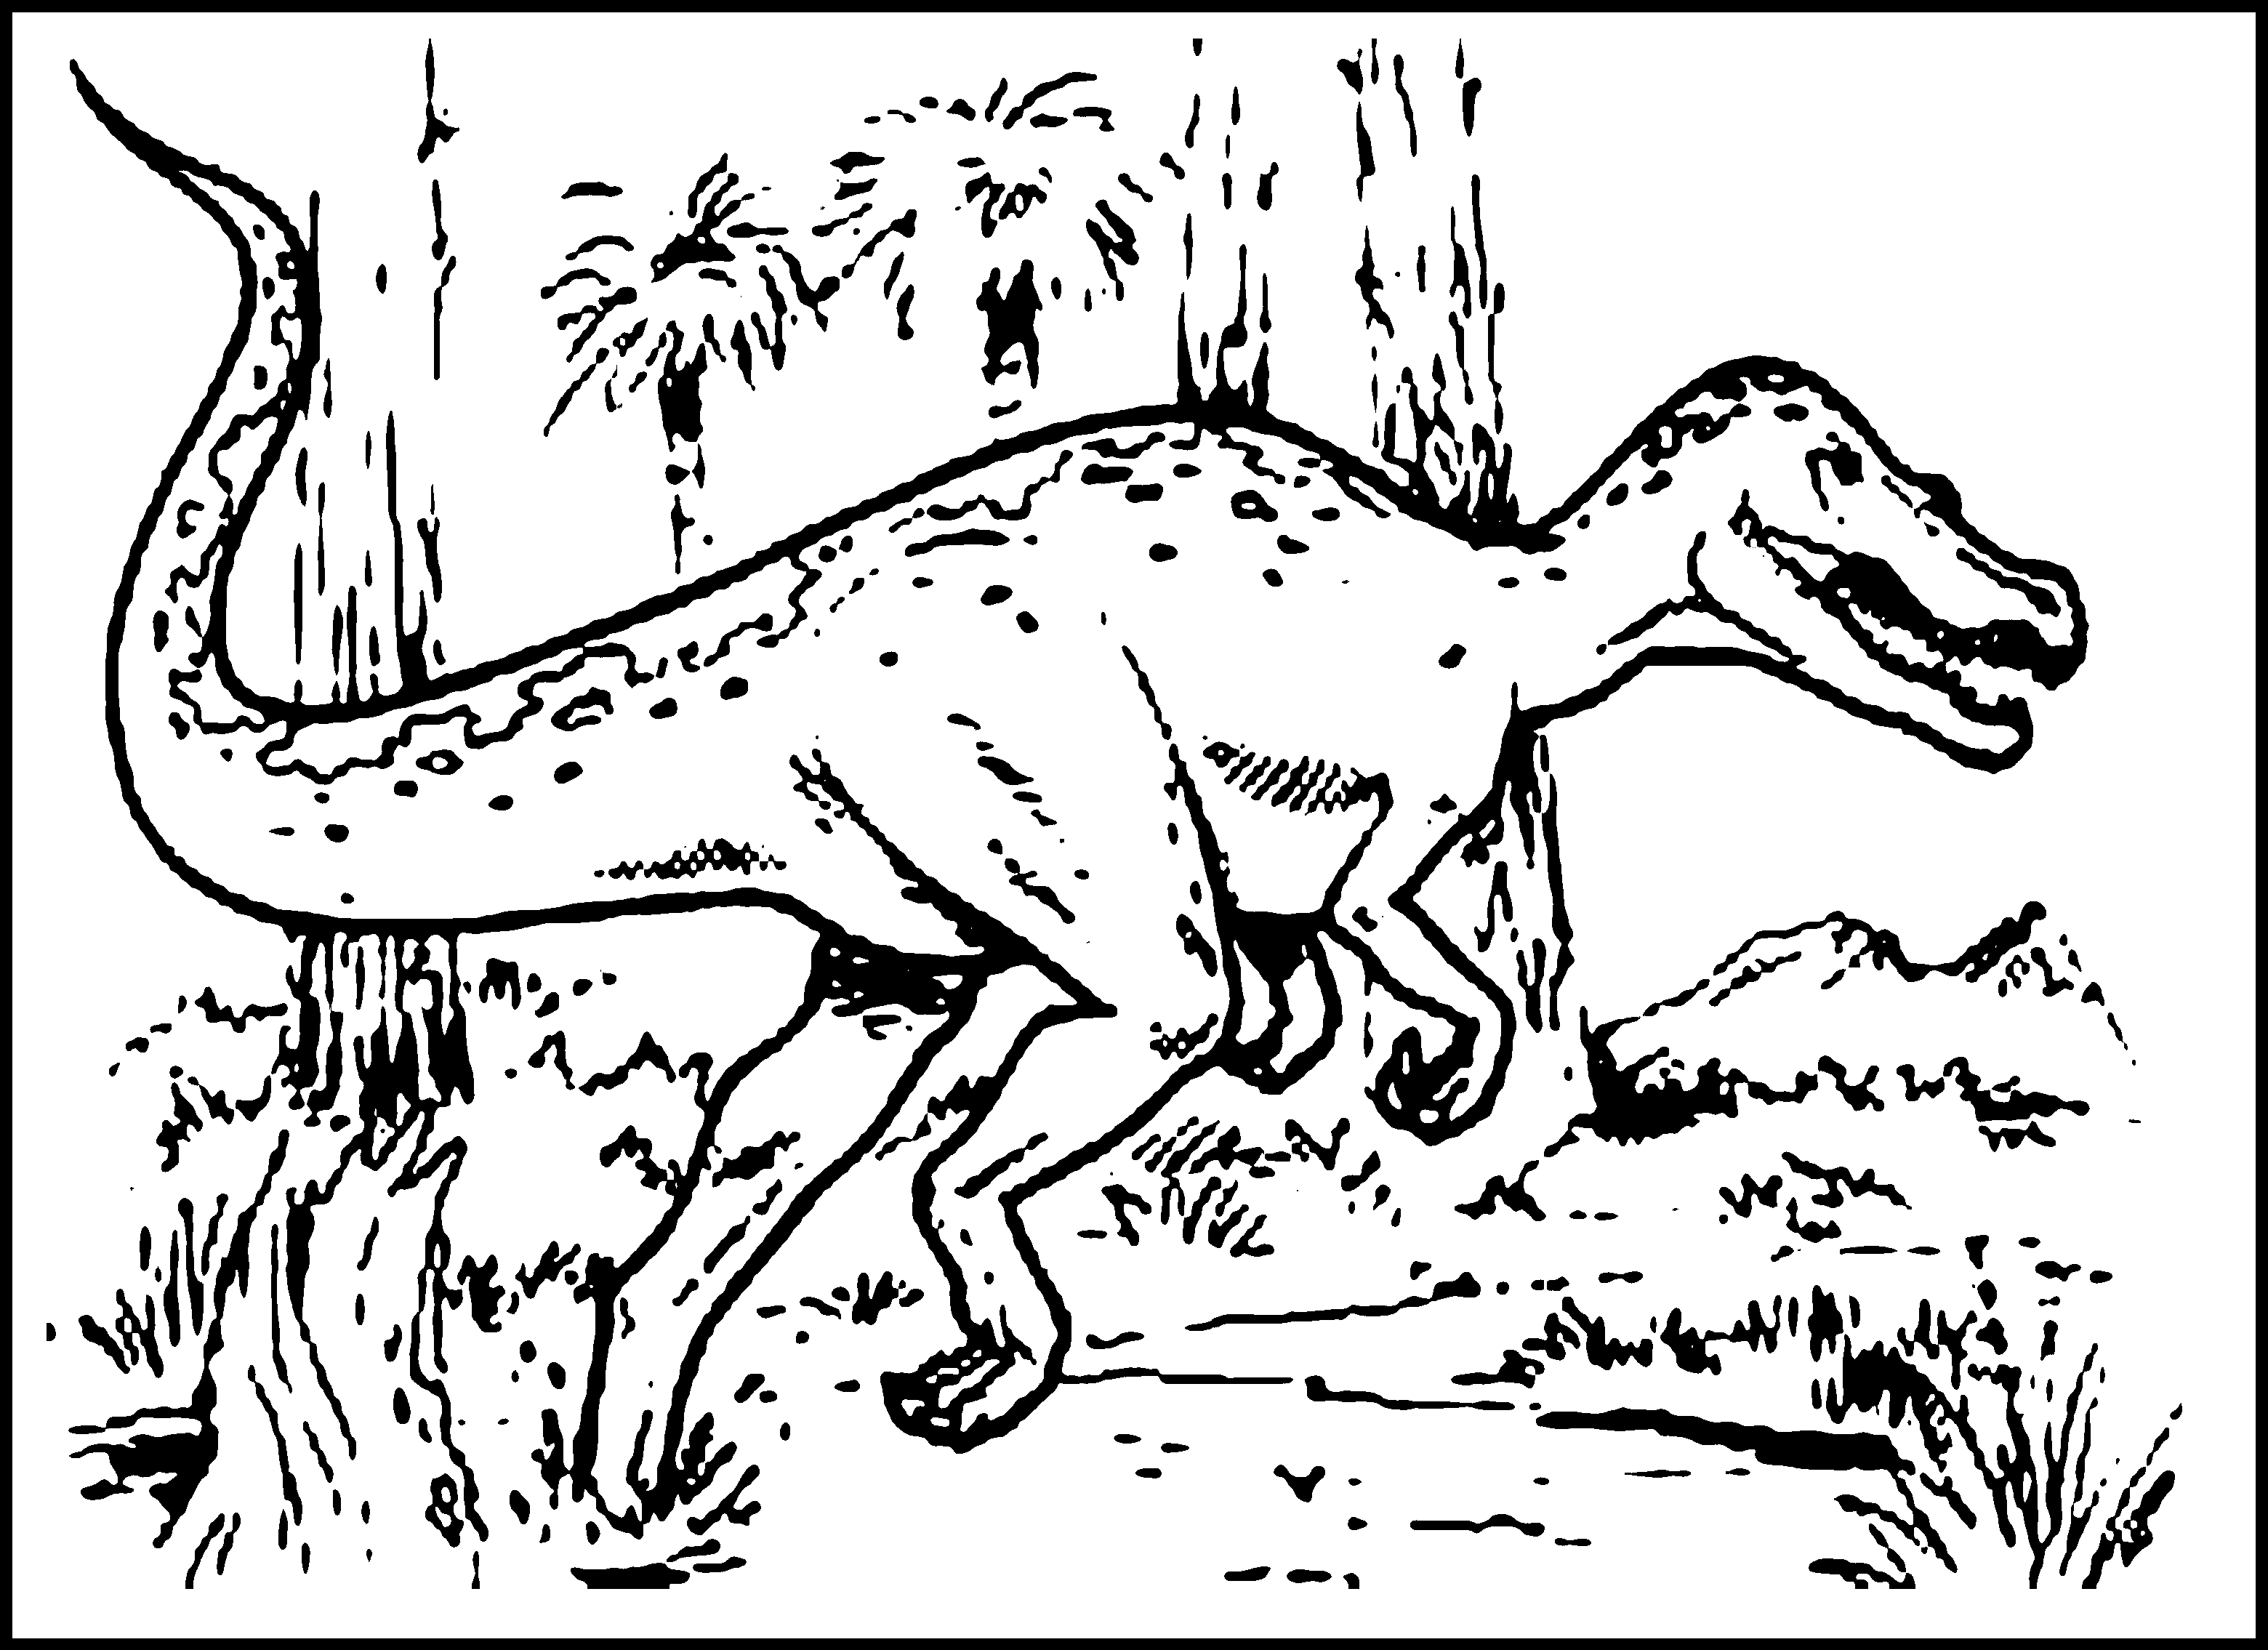 coloring dinosaur pictures for kids dinosaur coloring pages for kids for kids dinosaur coloring pictures